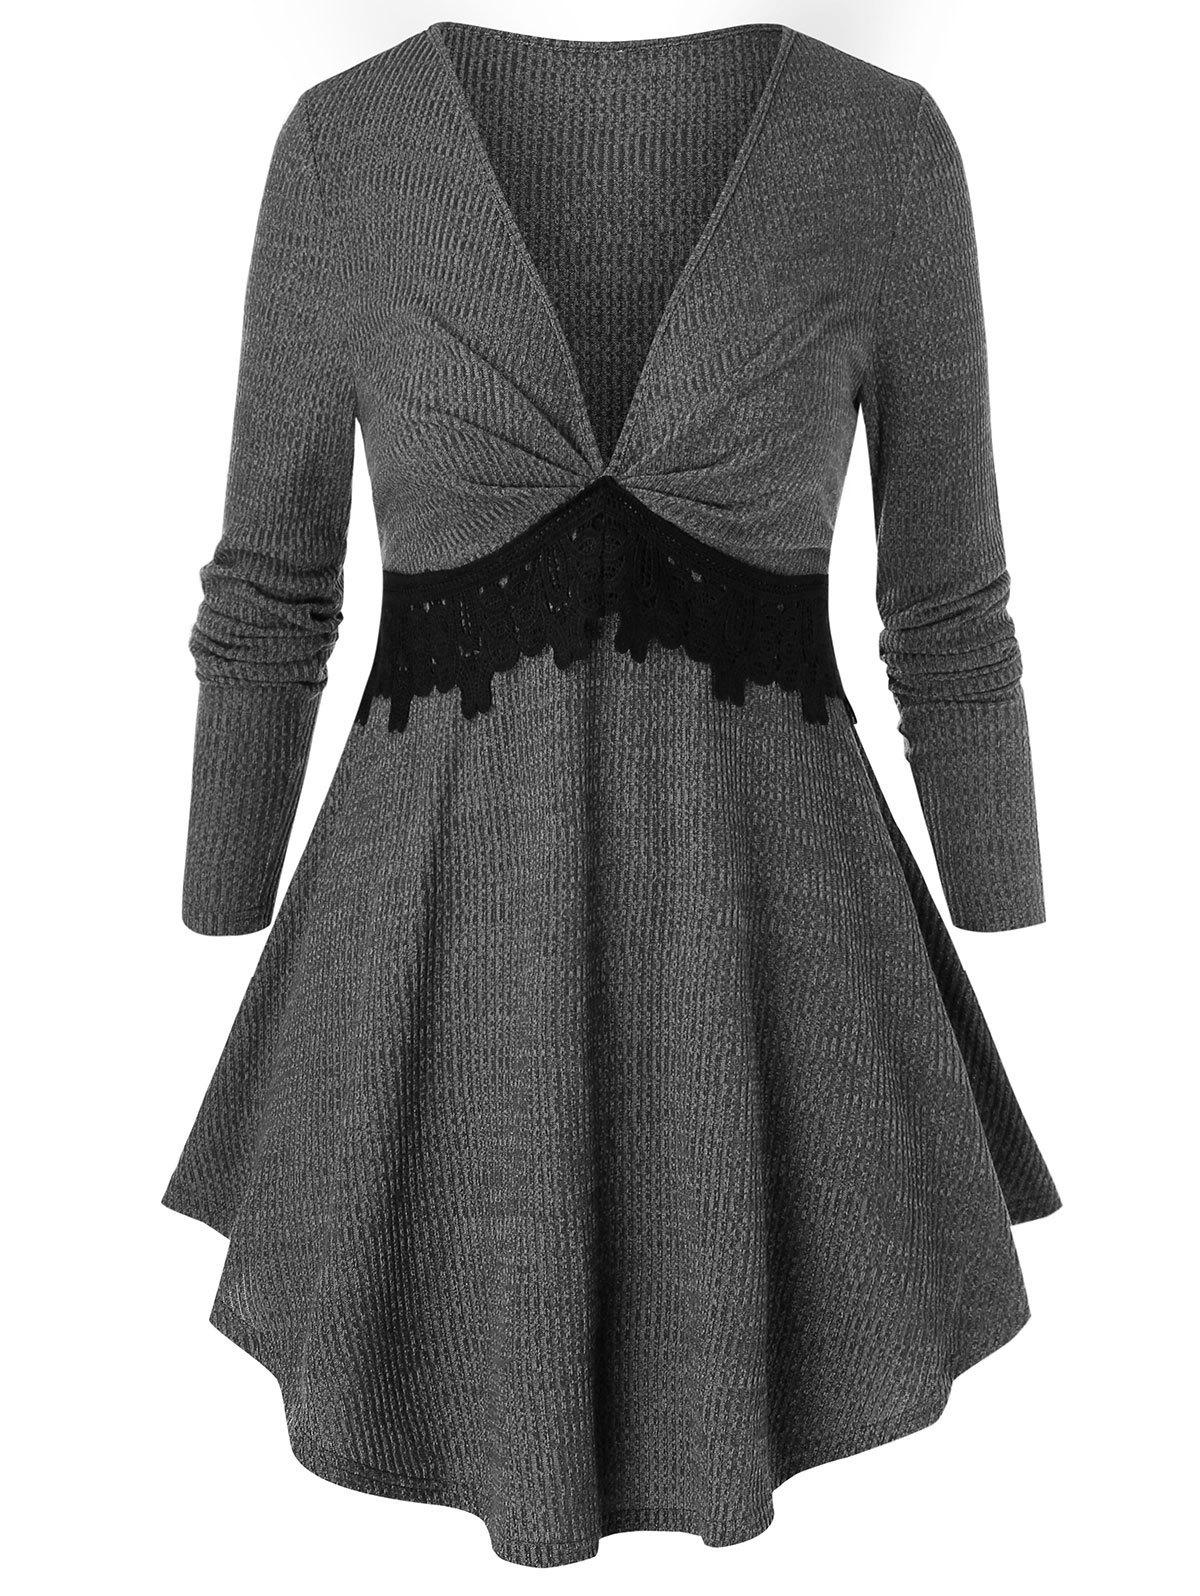 Plus Size Plunging Neck Lace Insert Marled Knitwear - GRAY 5X